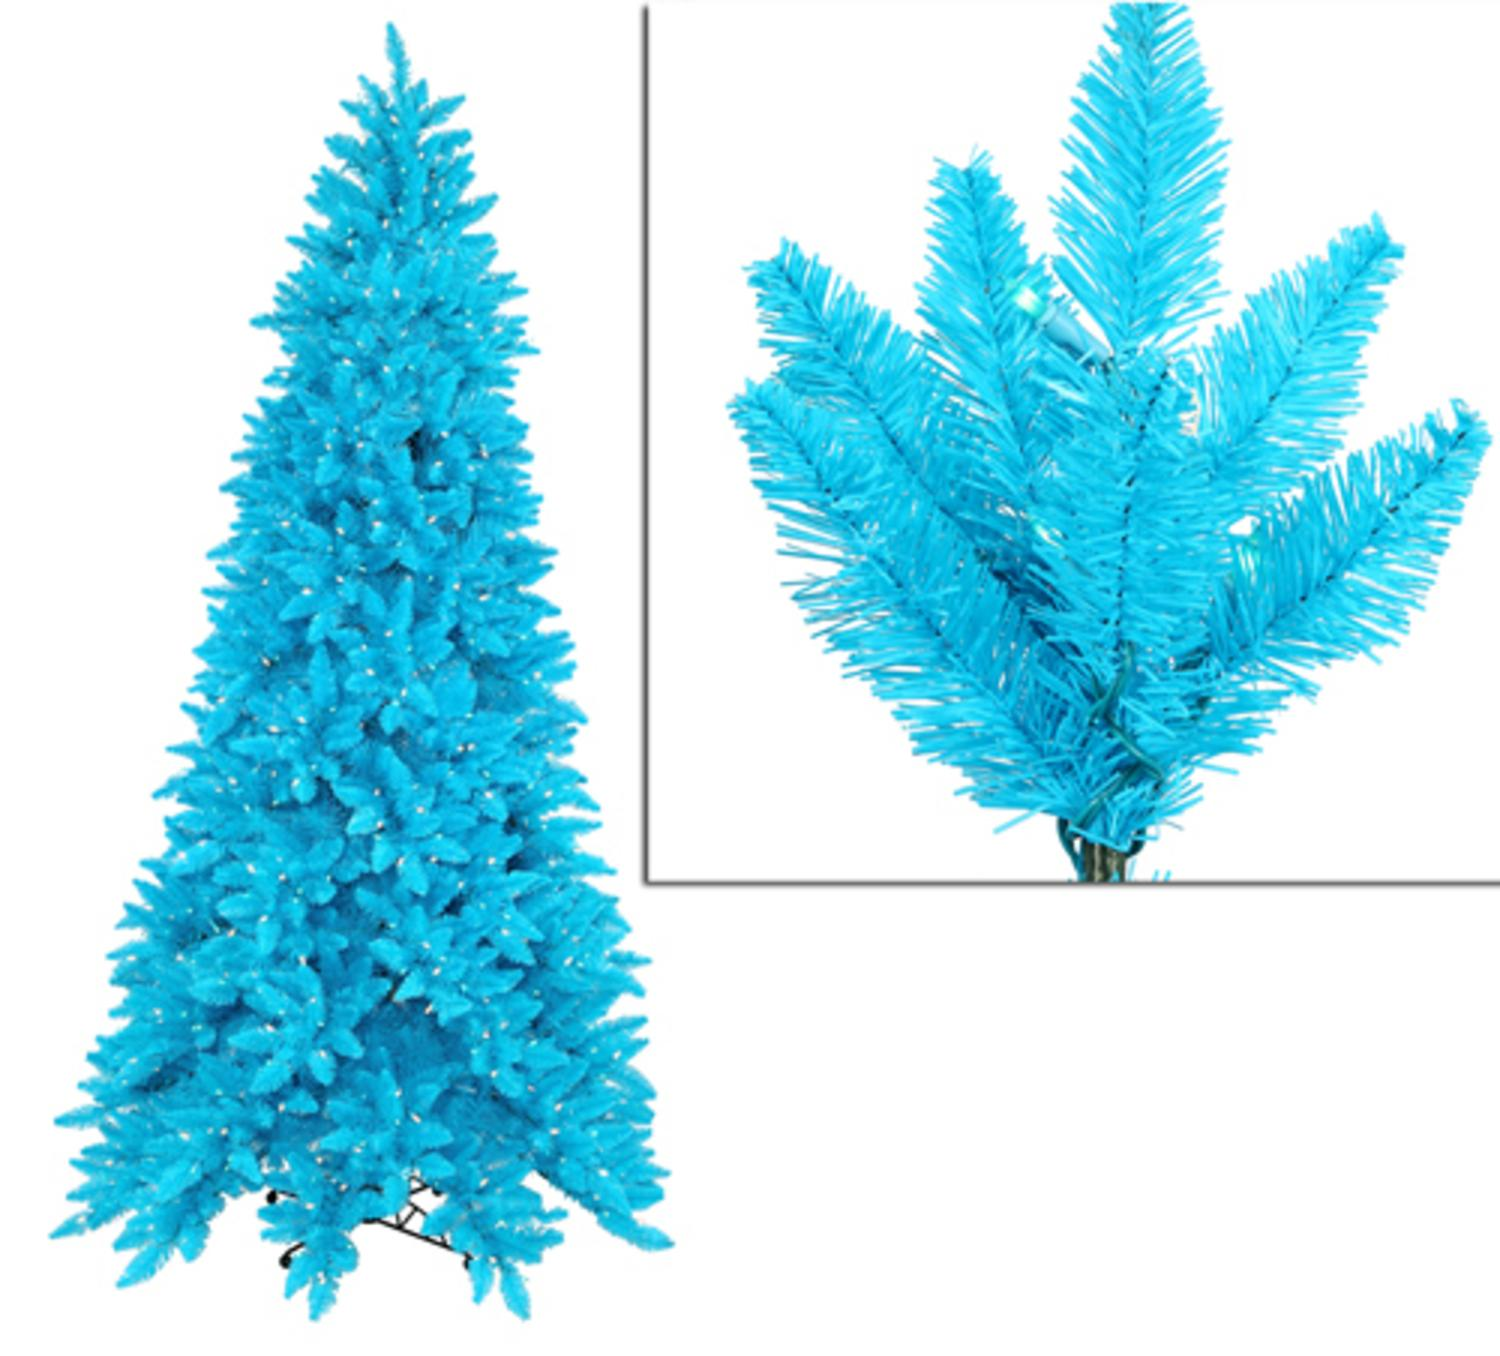 12' Pre-Lit Slim Sky Blue Ashley Spruce Christmas Tree - Clear & Blue Lights